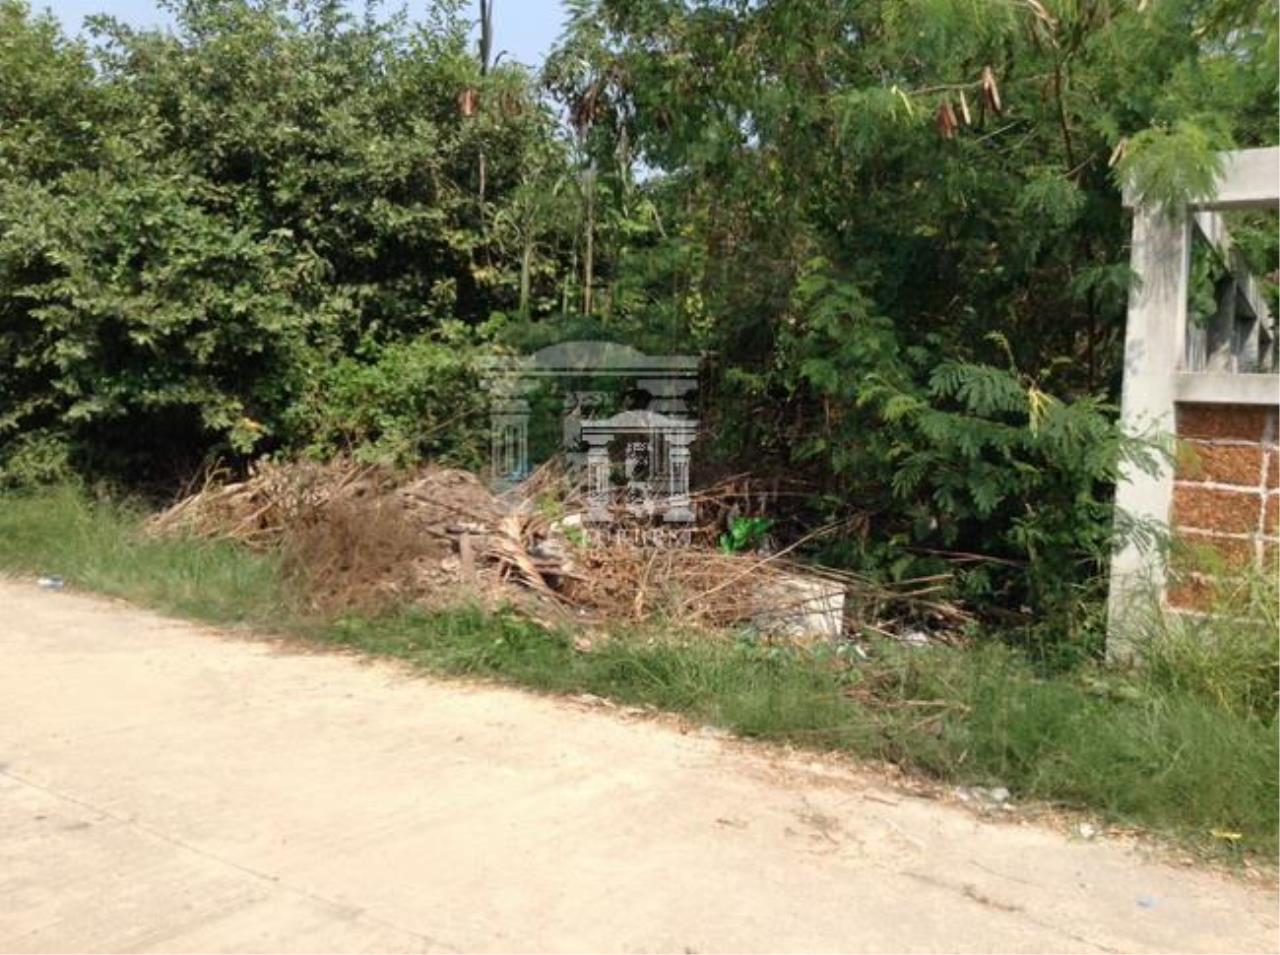 Forbest Properties Agency's 37164-Land For Sale, in Ban Pho district, Chachoengsao province, 4 rai 340 sq.wa. 2